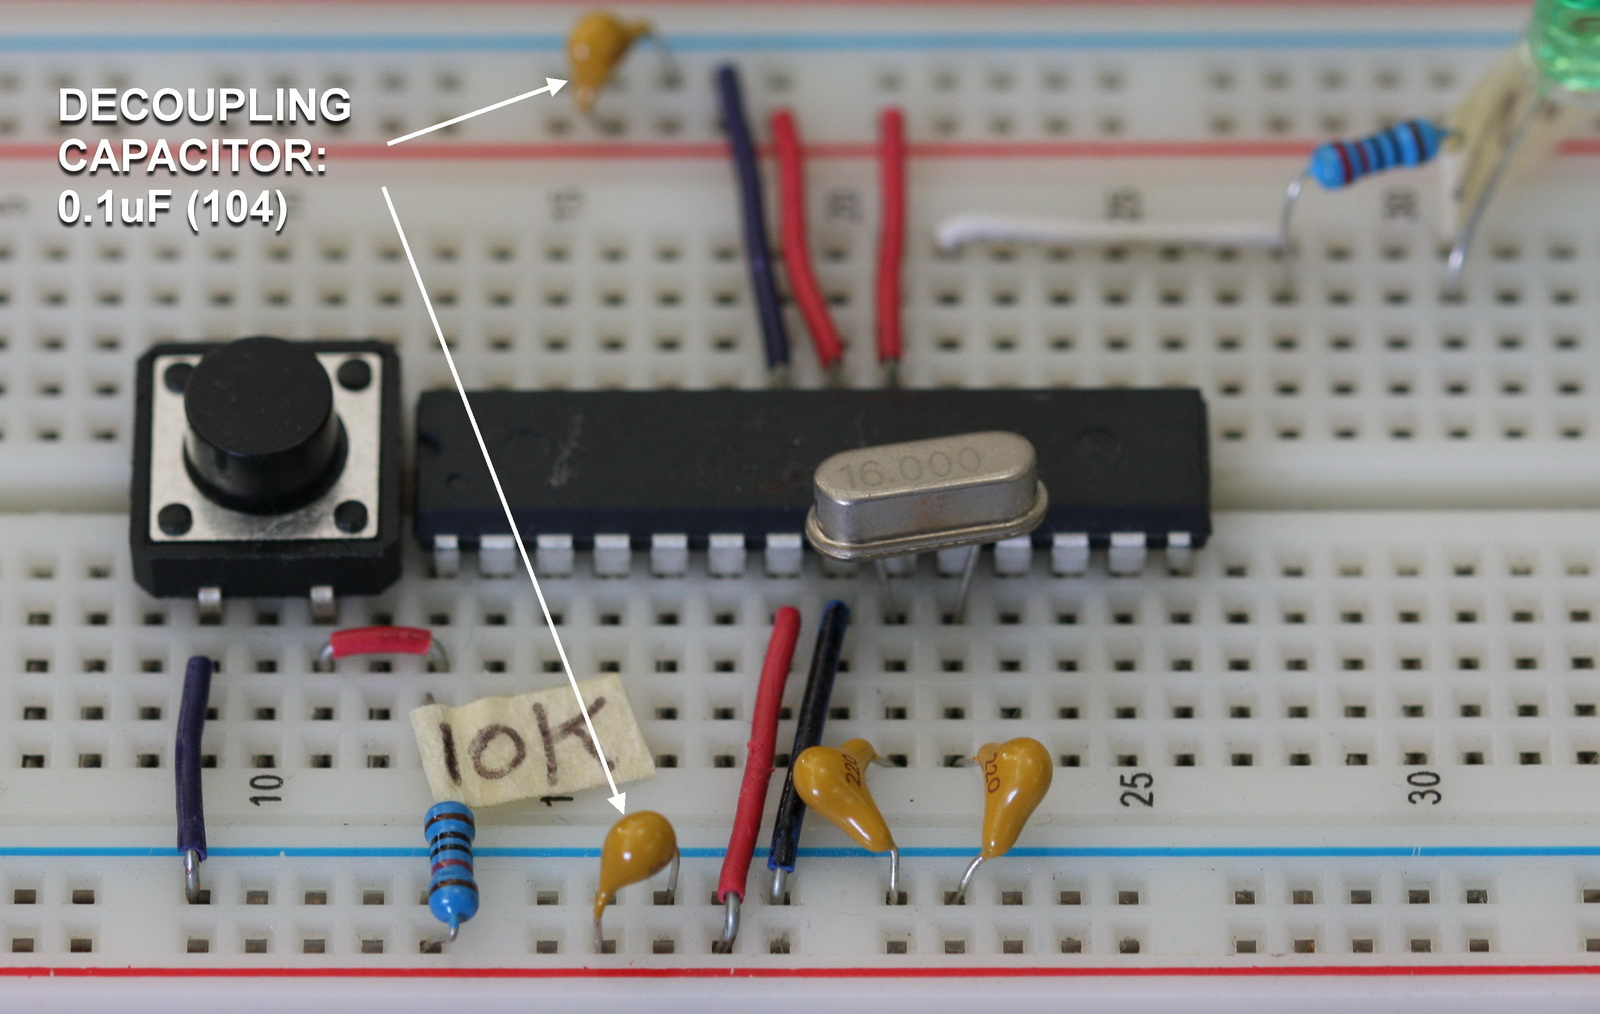 Arduino On A Breadboard Martyn Currey Led Circuit Is Decoupling Capacitor